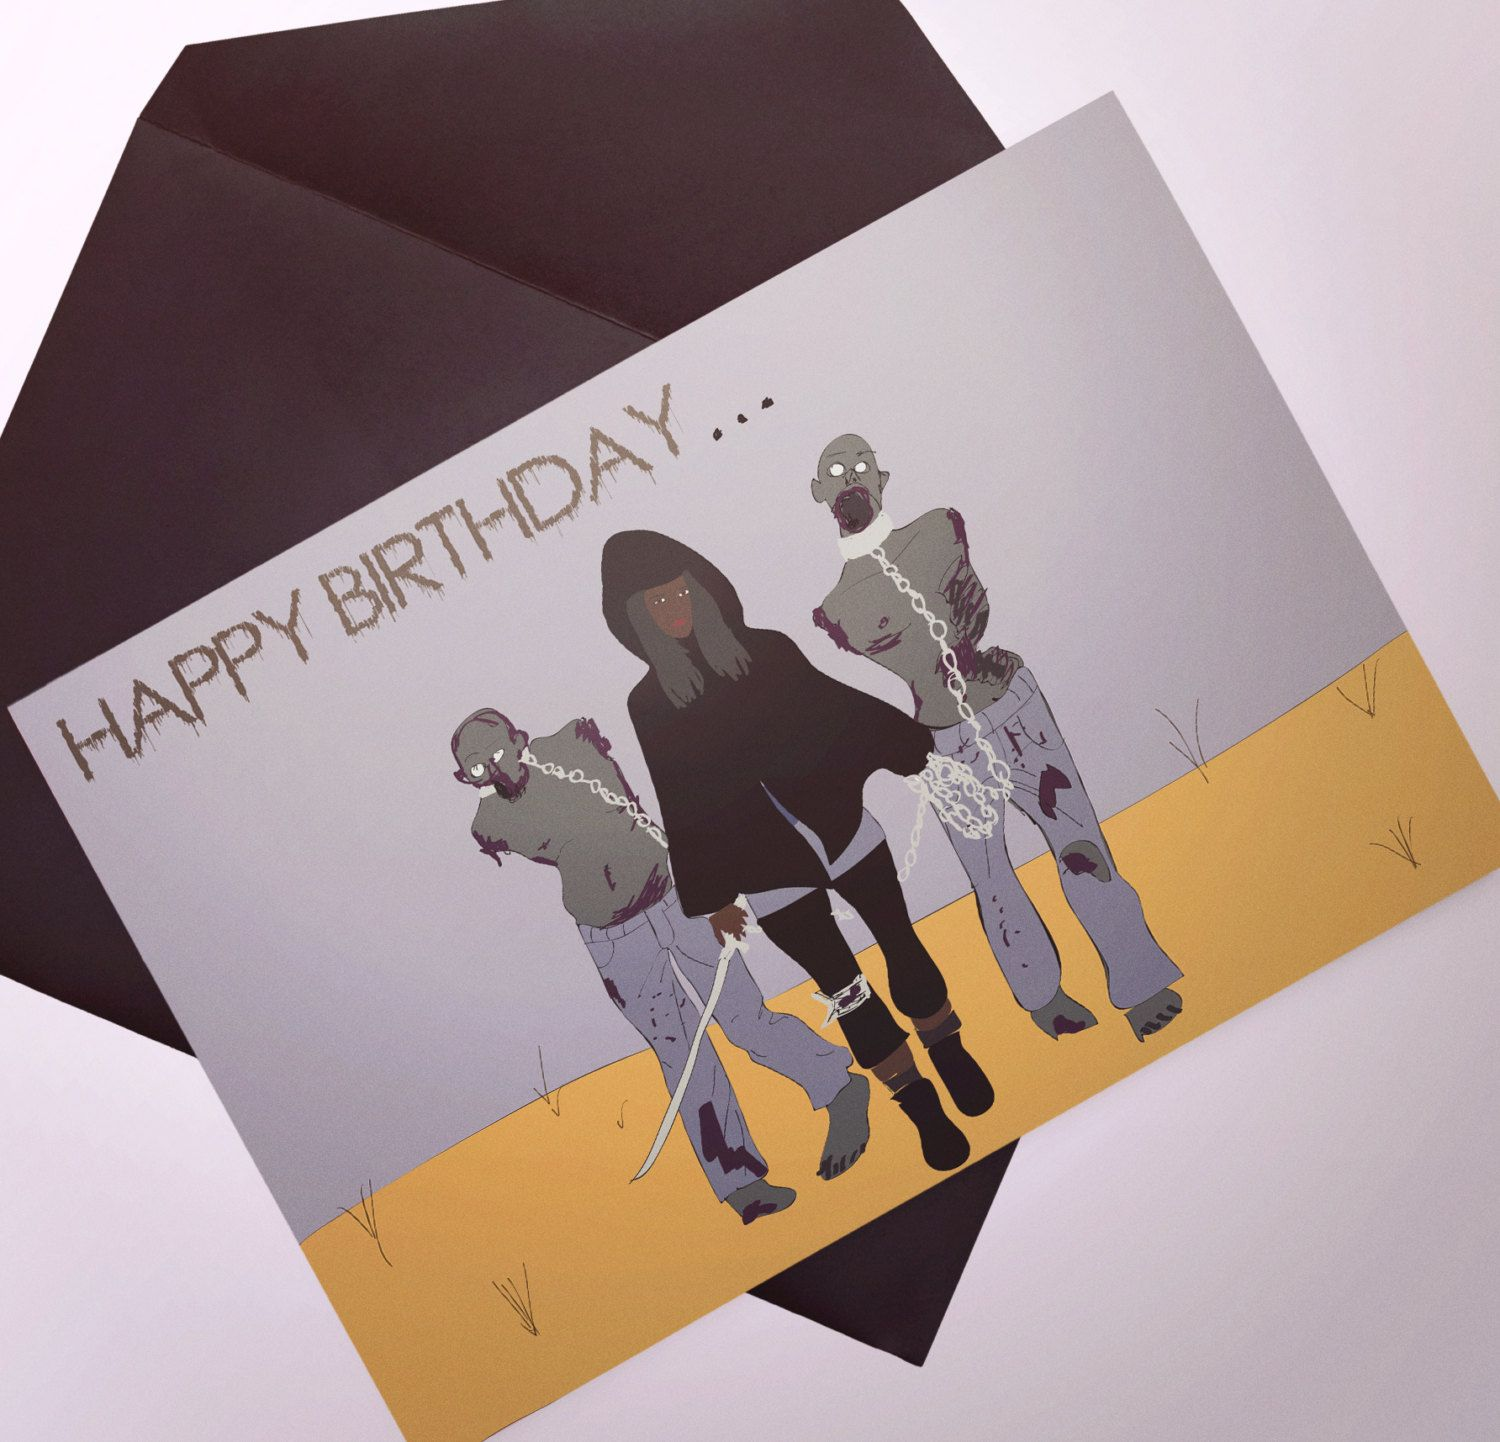 The walking dead zombie inspired birthday card happy birthday new to poppastiche on etsy the walking dead zombie birthday card happy birthday kristyandbryce Choice Image